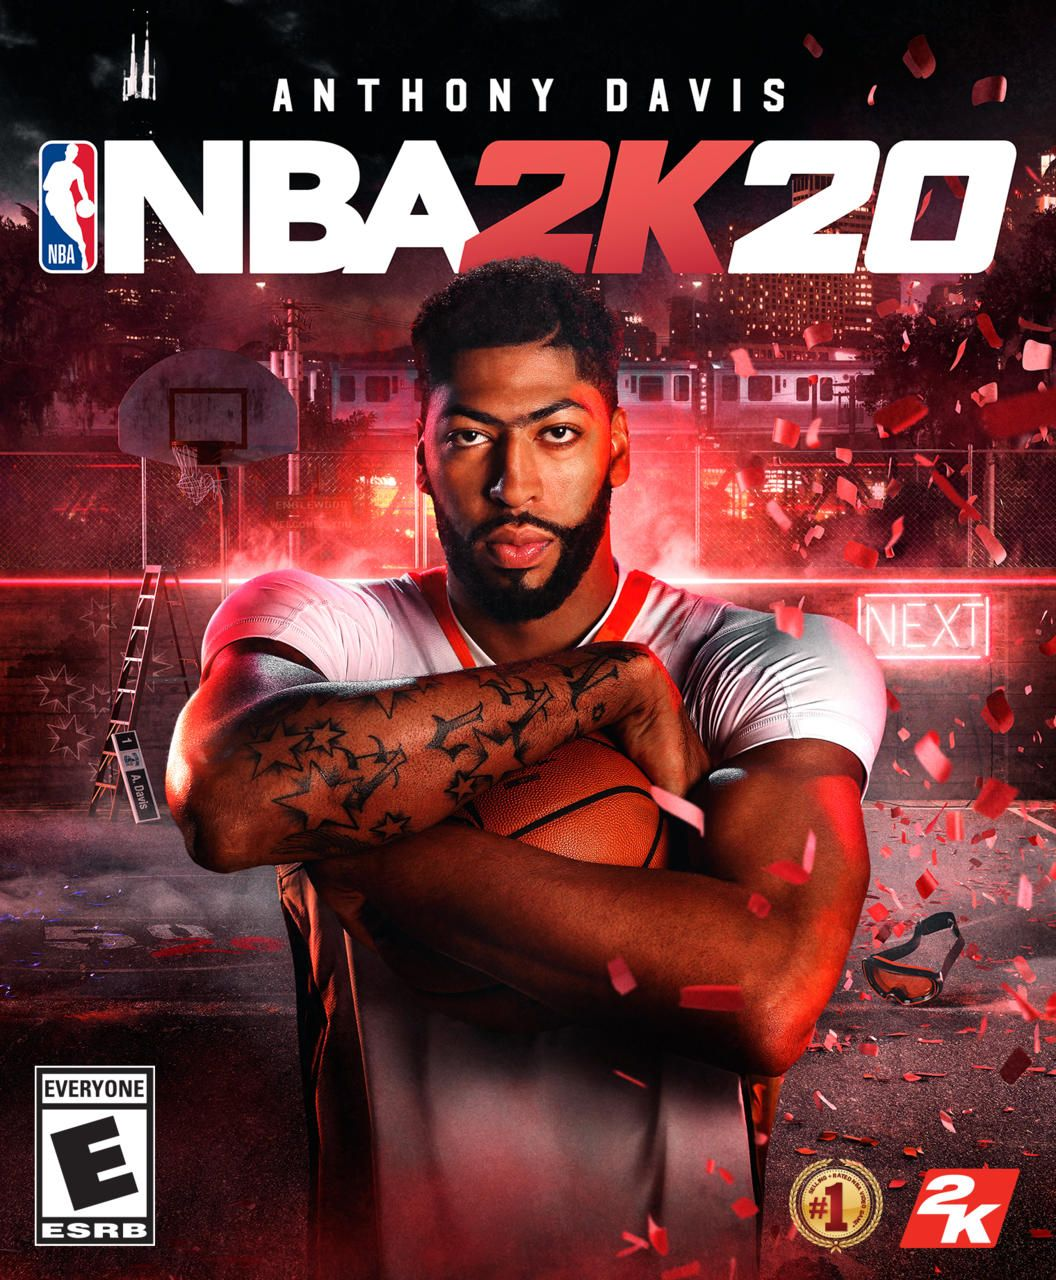 Nba 2k20 Wallpapers Wallpaper Cave In 2020 Ios Games Xbox One Games Android Games